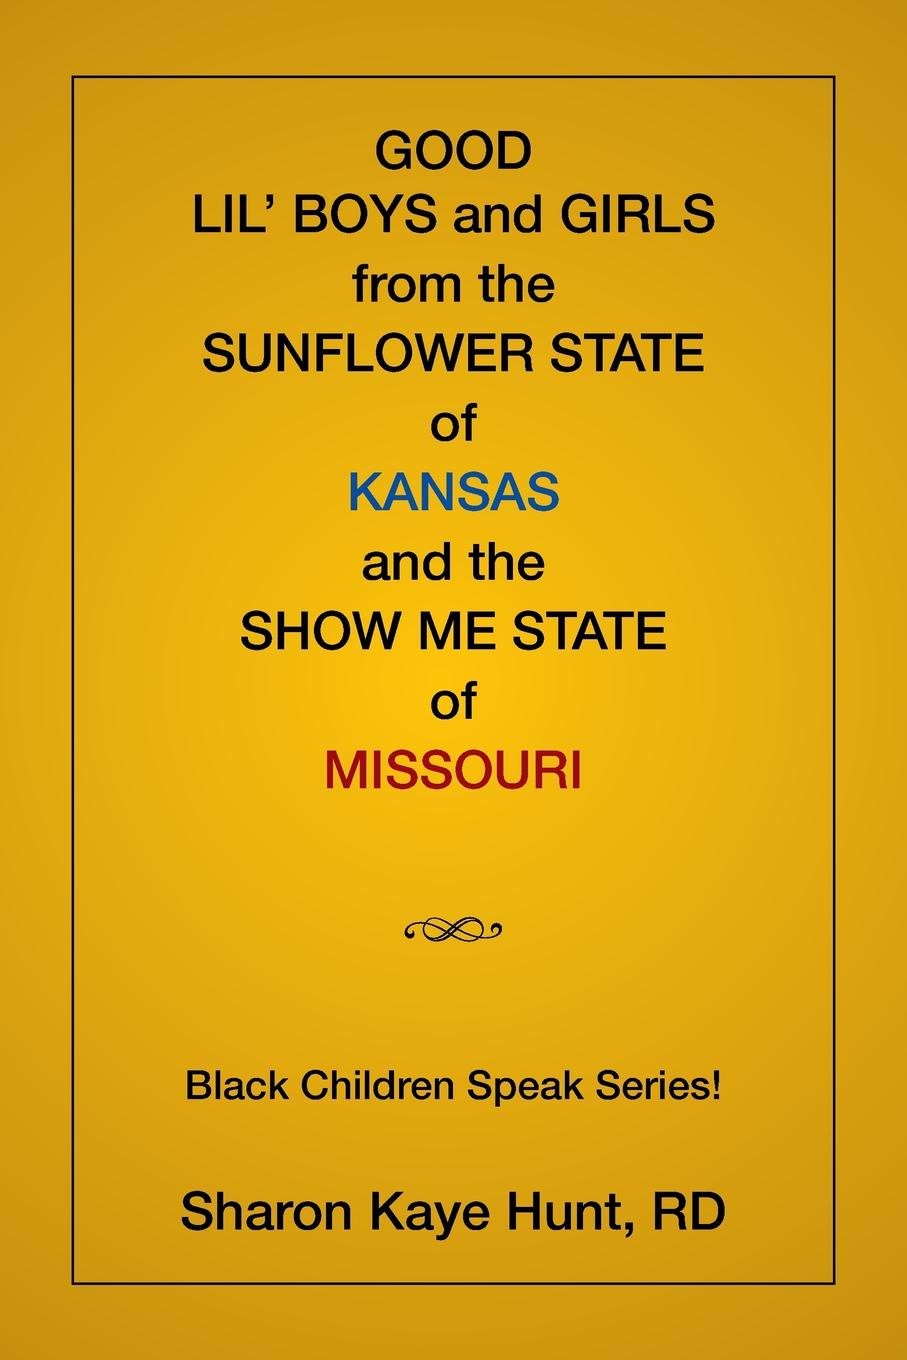 Sharon Hunt Good Lil' Boys and Girls From The Sunflower State Of Kansas And The Show Me State Of Missouri Black Children Speak Series